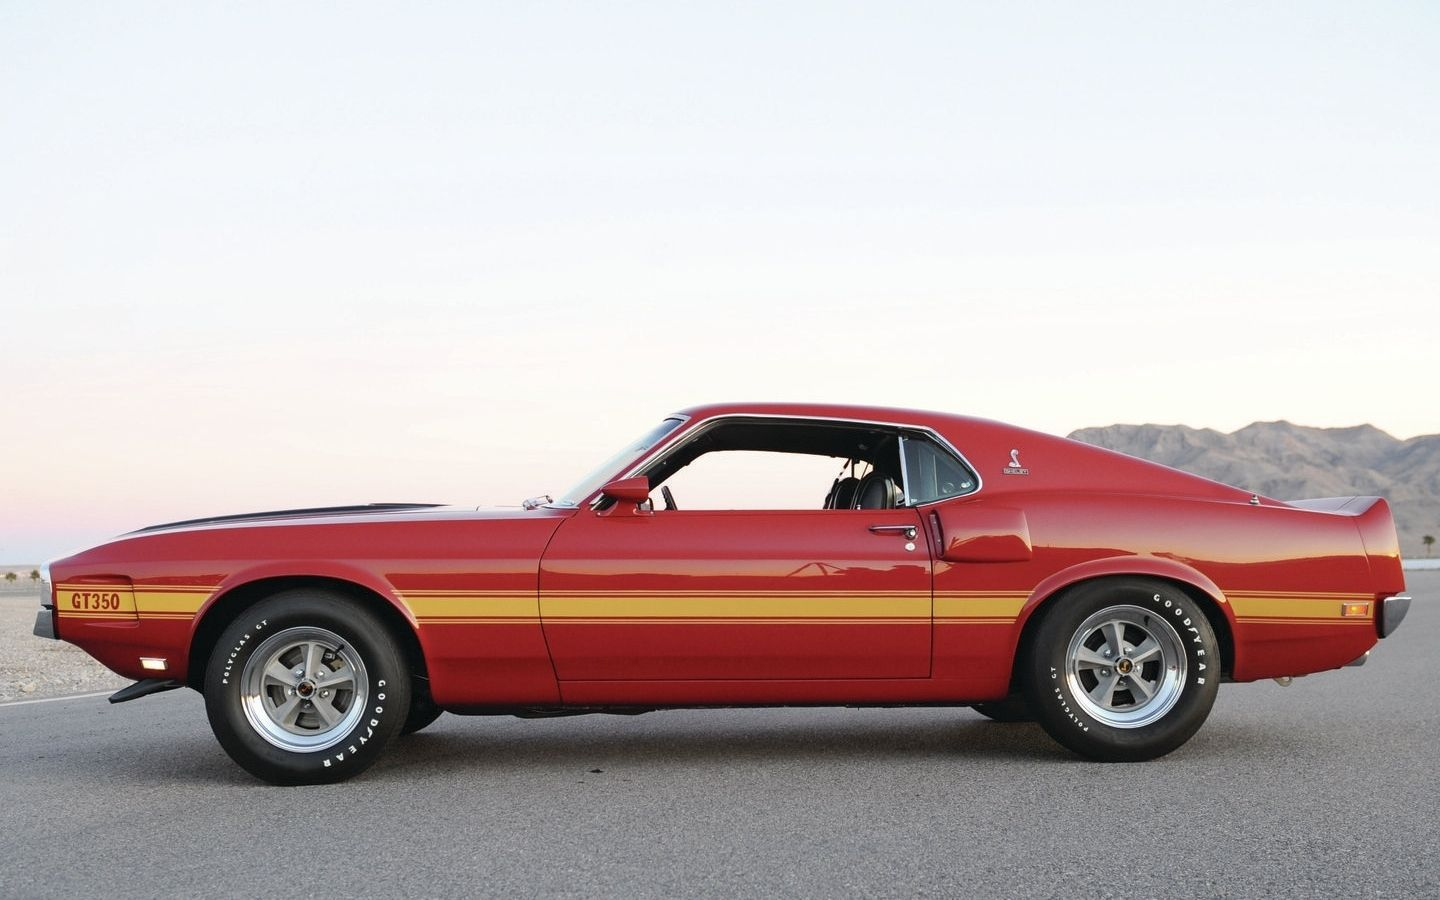 Computer Wallpapers Desktop Backgrounds 1440x900 Id 239496 Muscle Cars Mustang Cars Classic Cars Muscle